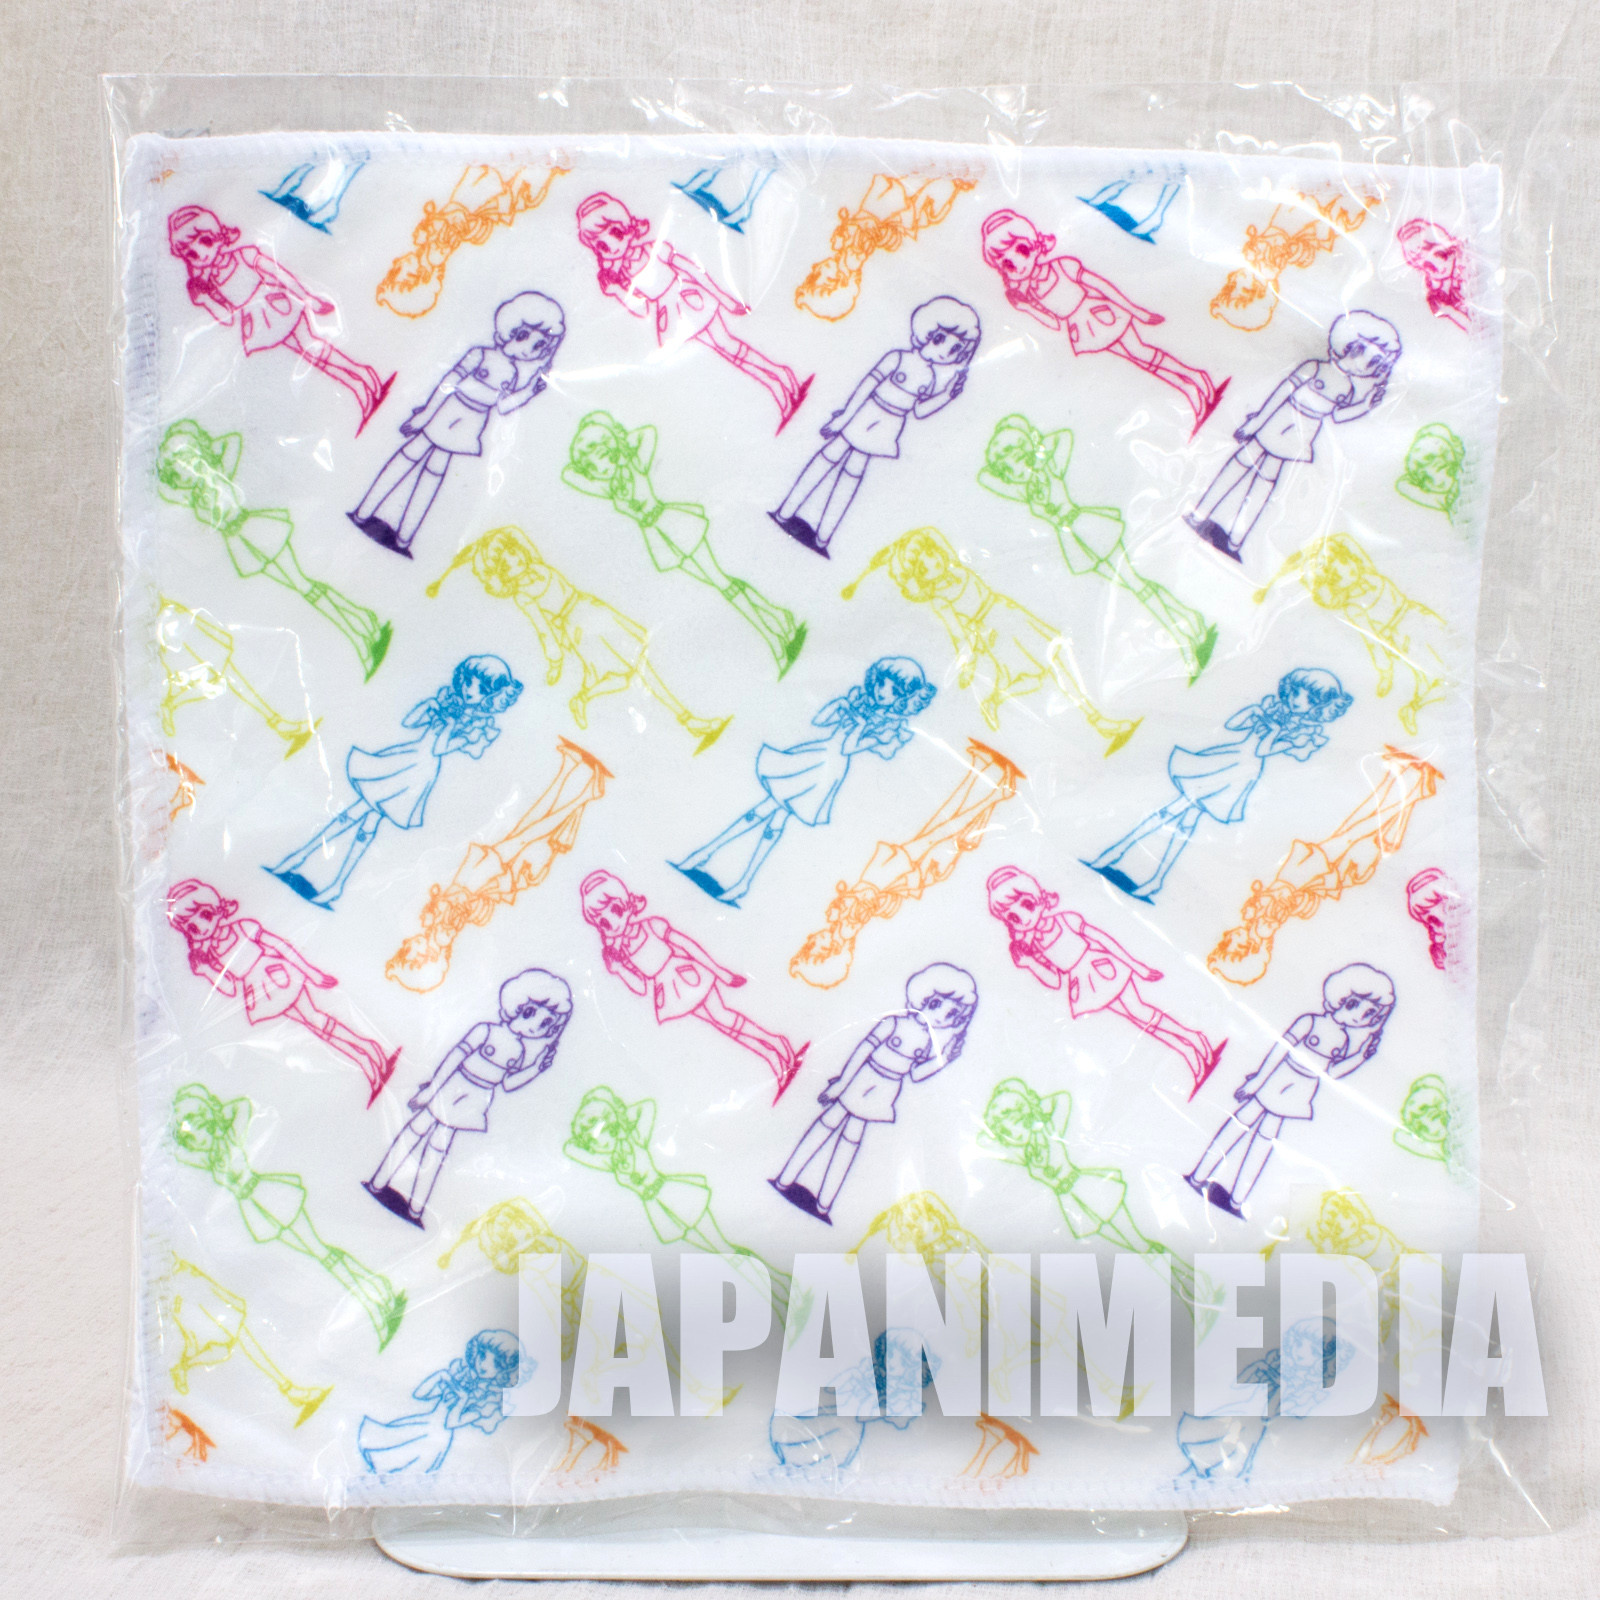 Majokko Collection x NERDS Mini Towel TOEI [Sally / Akko / Mako / Megu / Lunlun / Lalabel] JAPAN ANIME 2